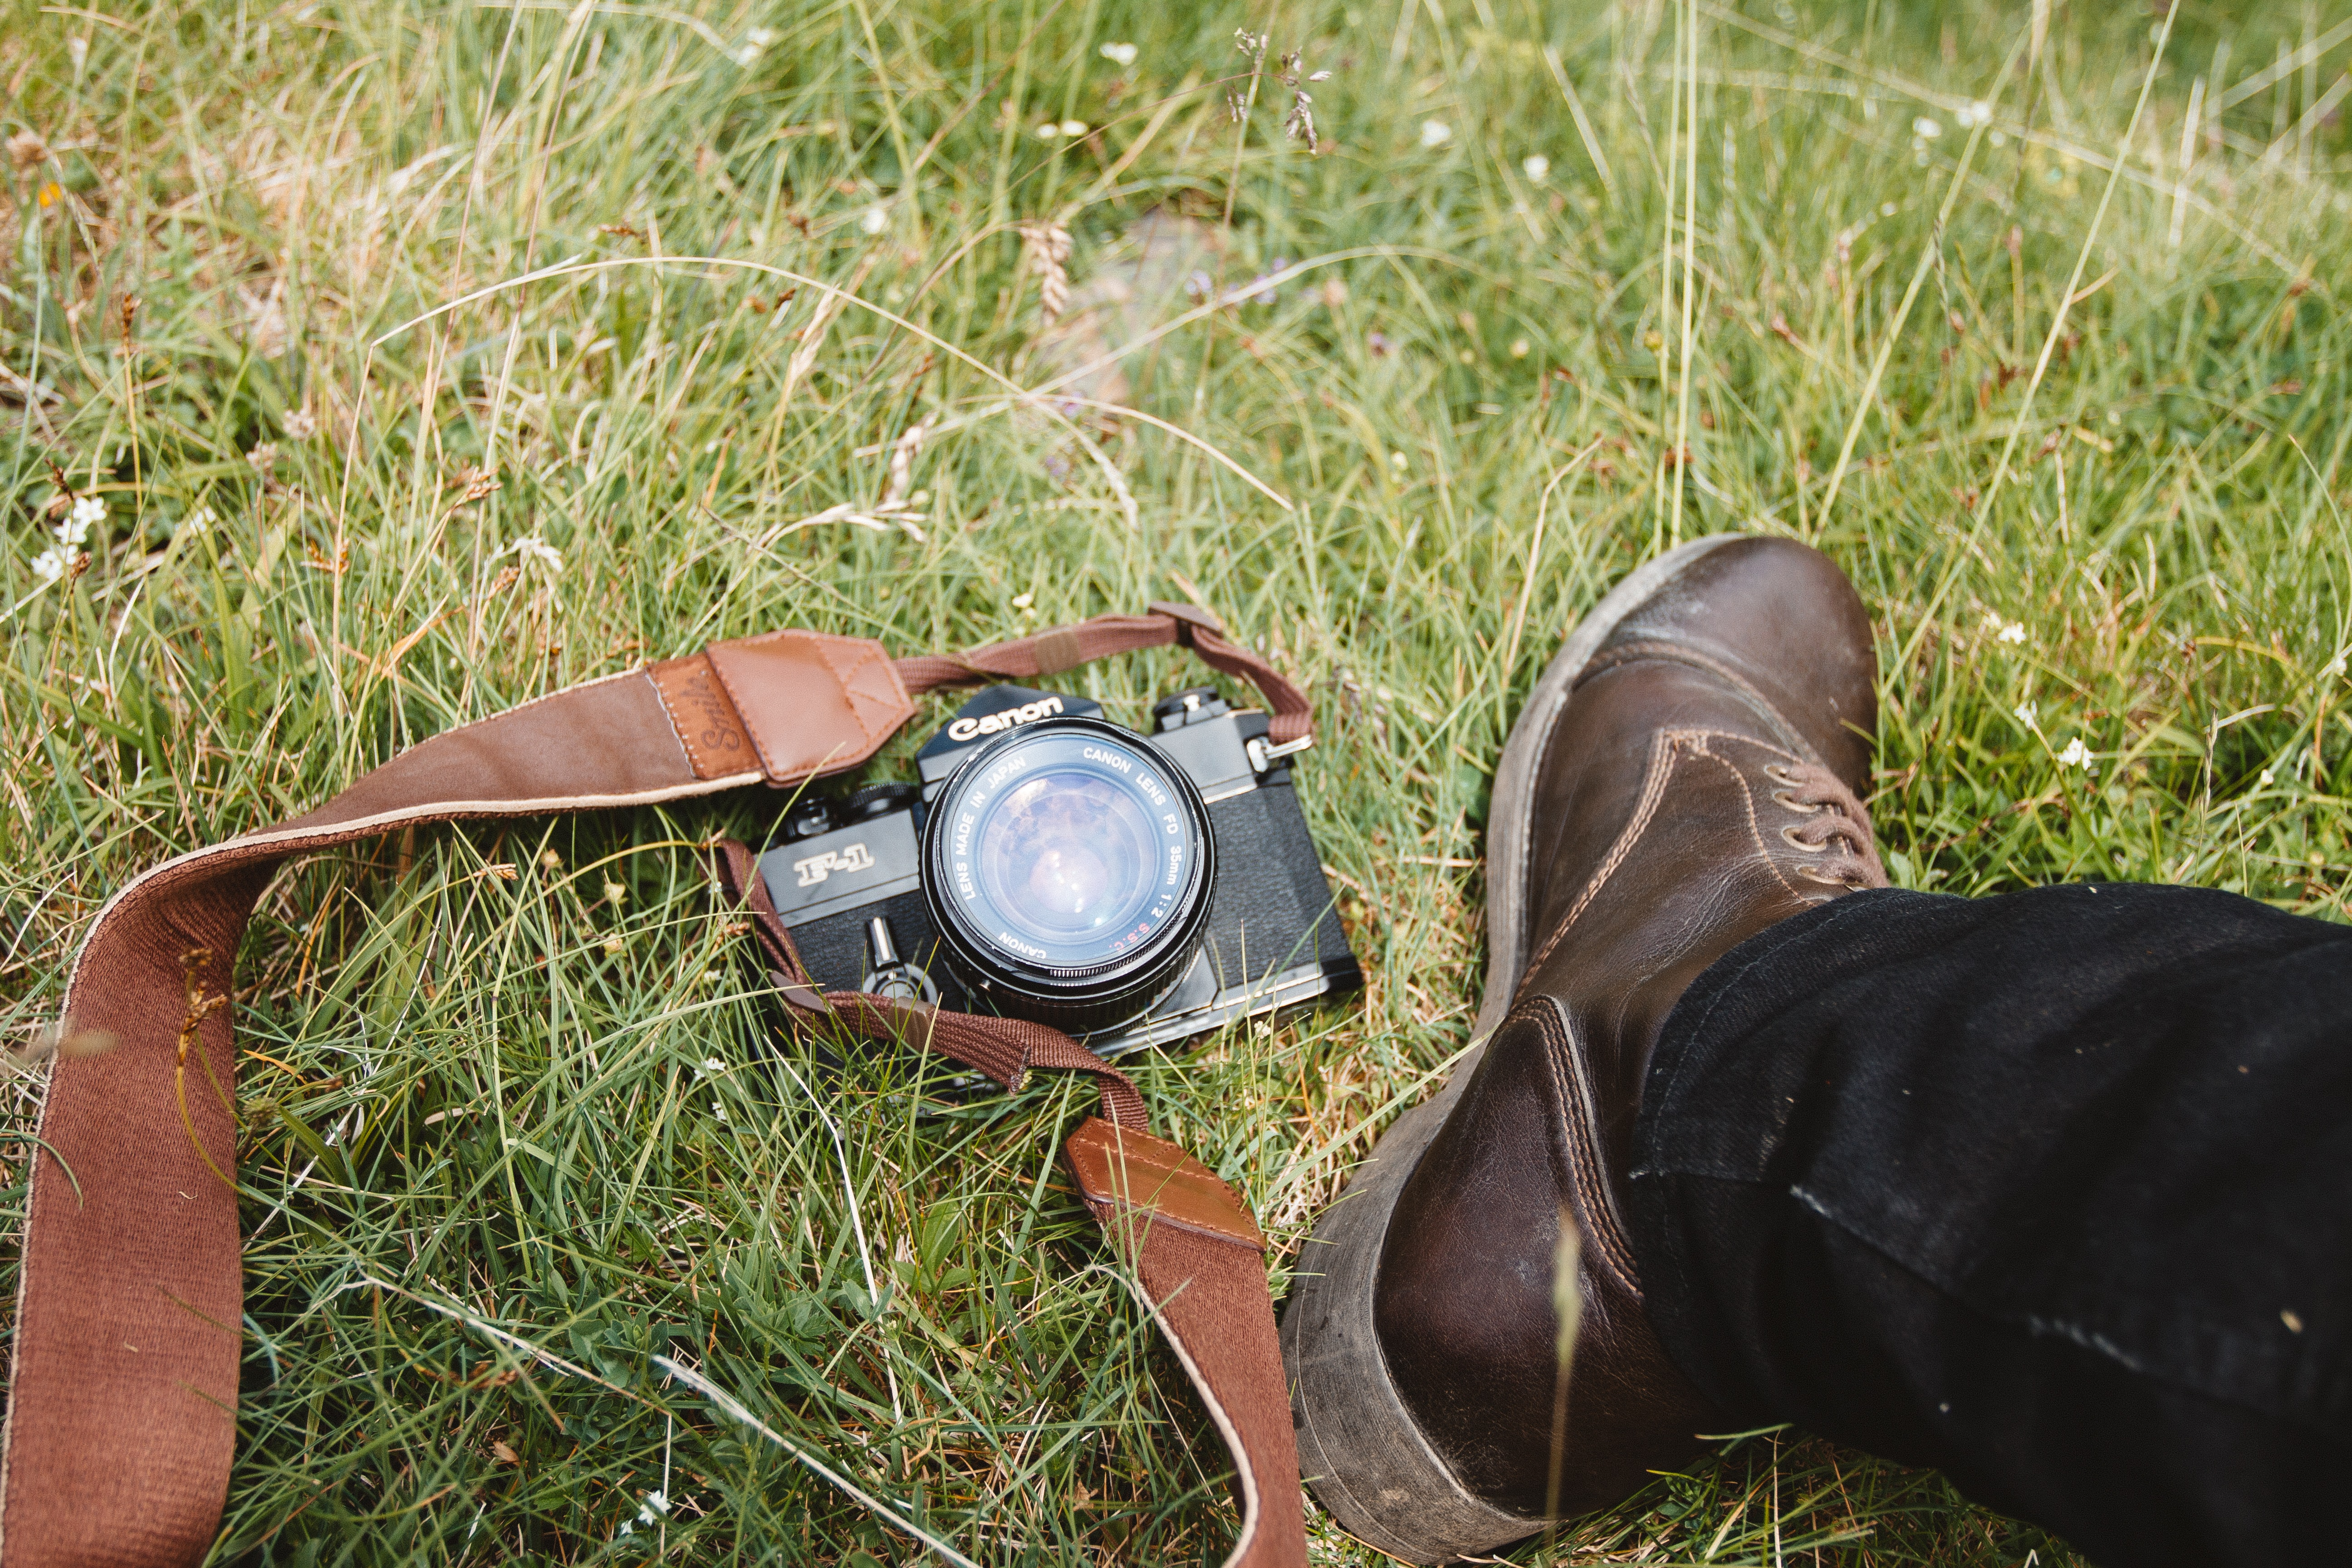 Black Canon F-1 camera with a red strap beside man wearing black pants and a leather boot on a grassy area